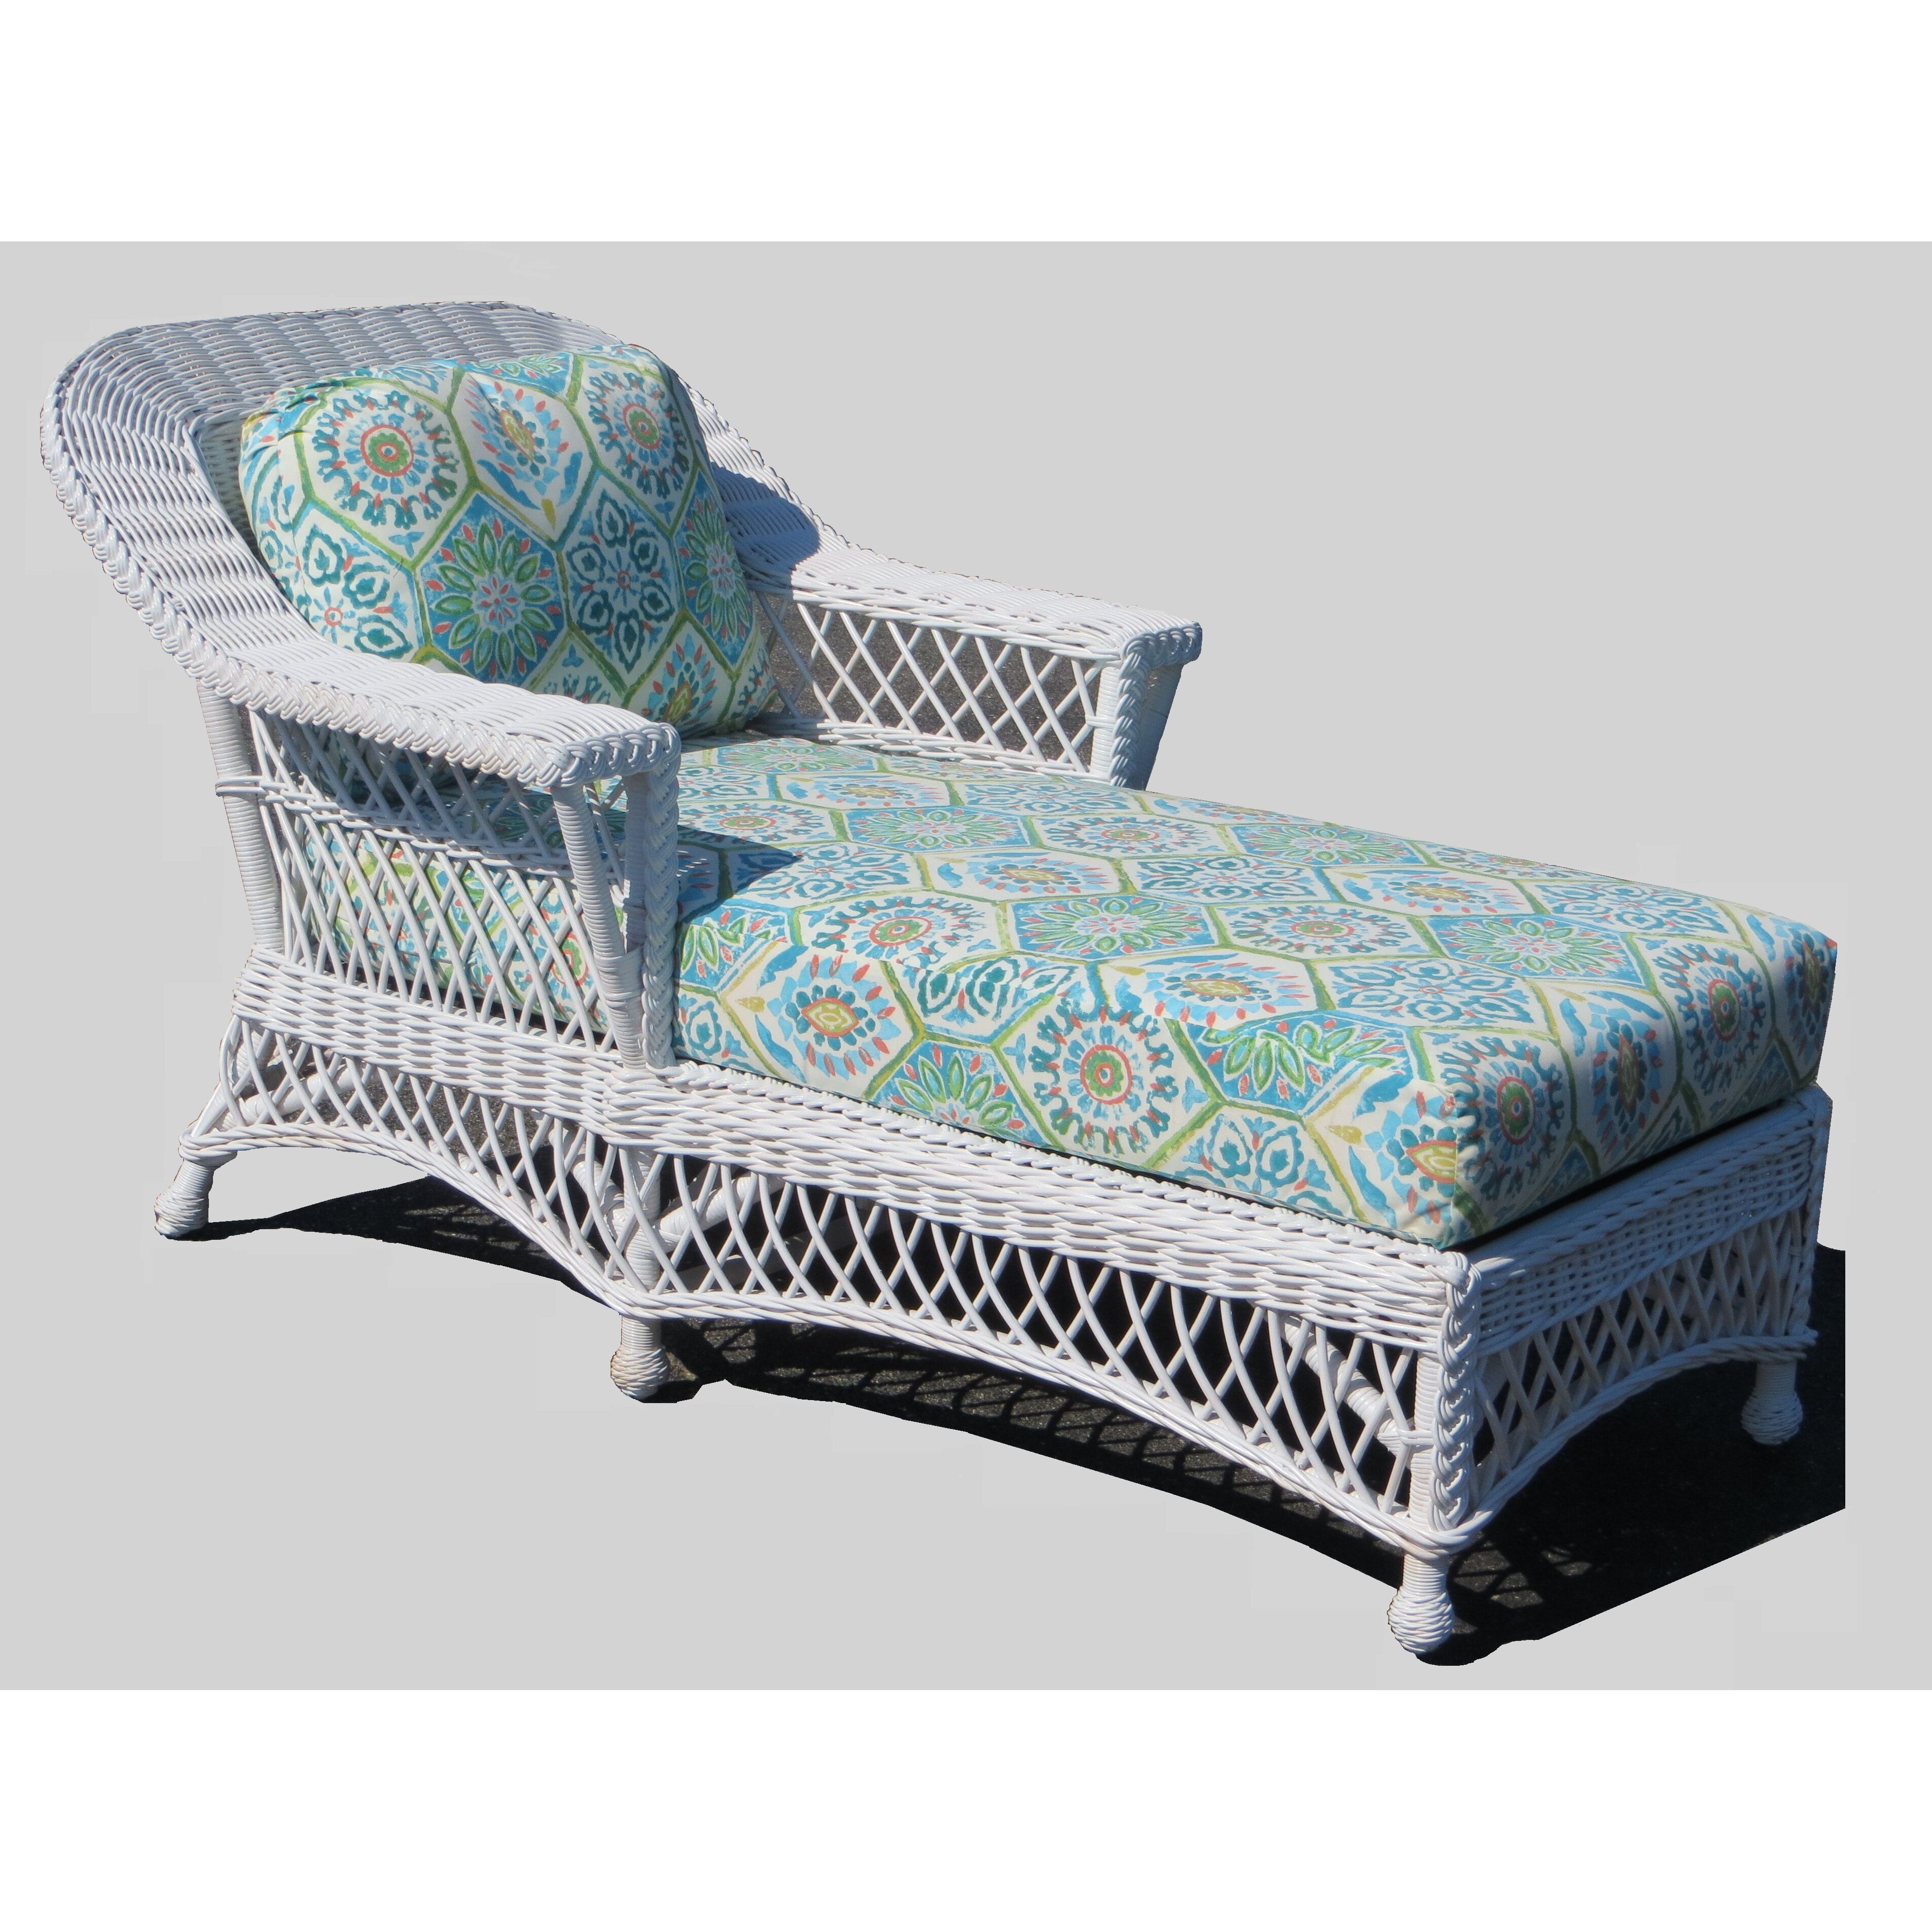 Spice islands bar harbor chaise lounge reviews wayfair for Chaise lounge bar